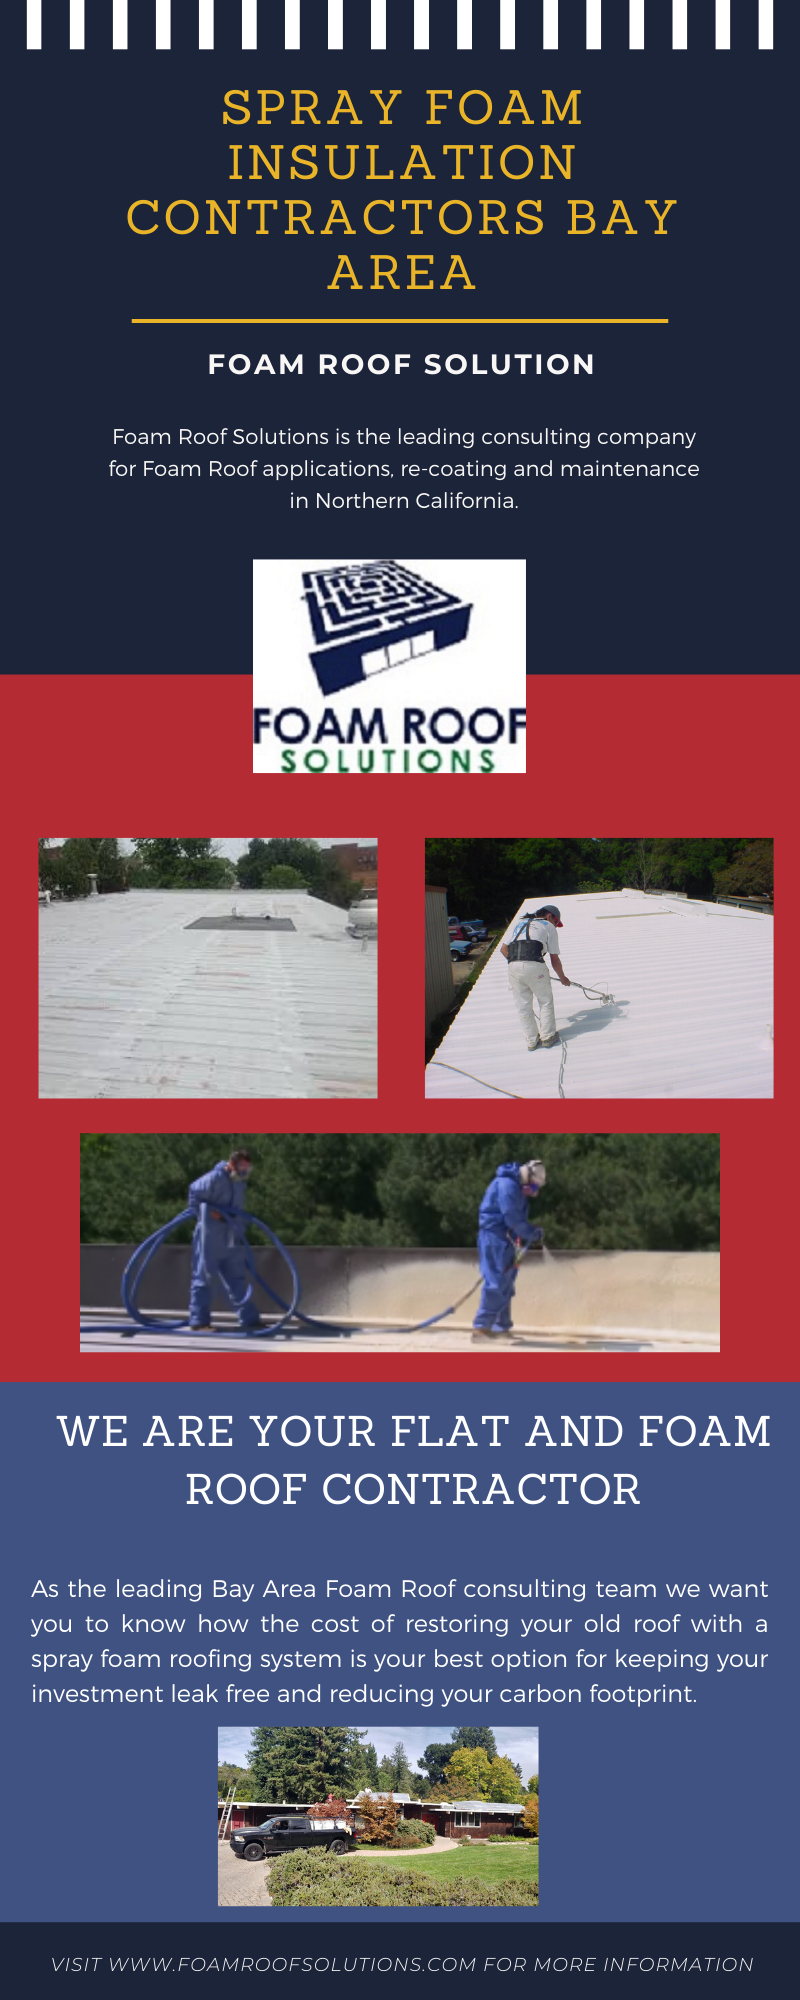 We Now Offer More Insulation Than Any San Francisco Bay Area Spray Foam Spf Contractor In 2020 Foam Roofing Contractors Spray Foam Roofing